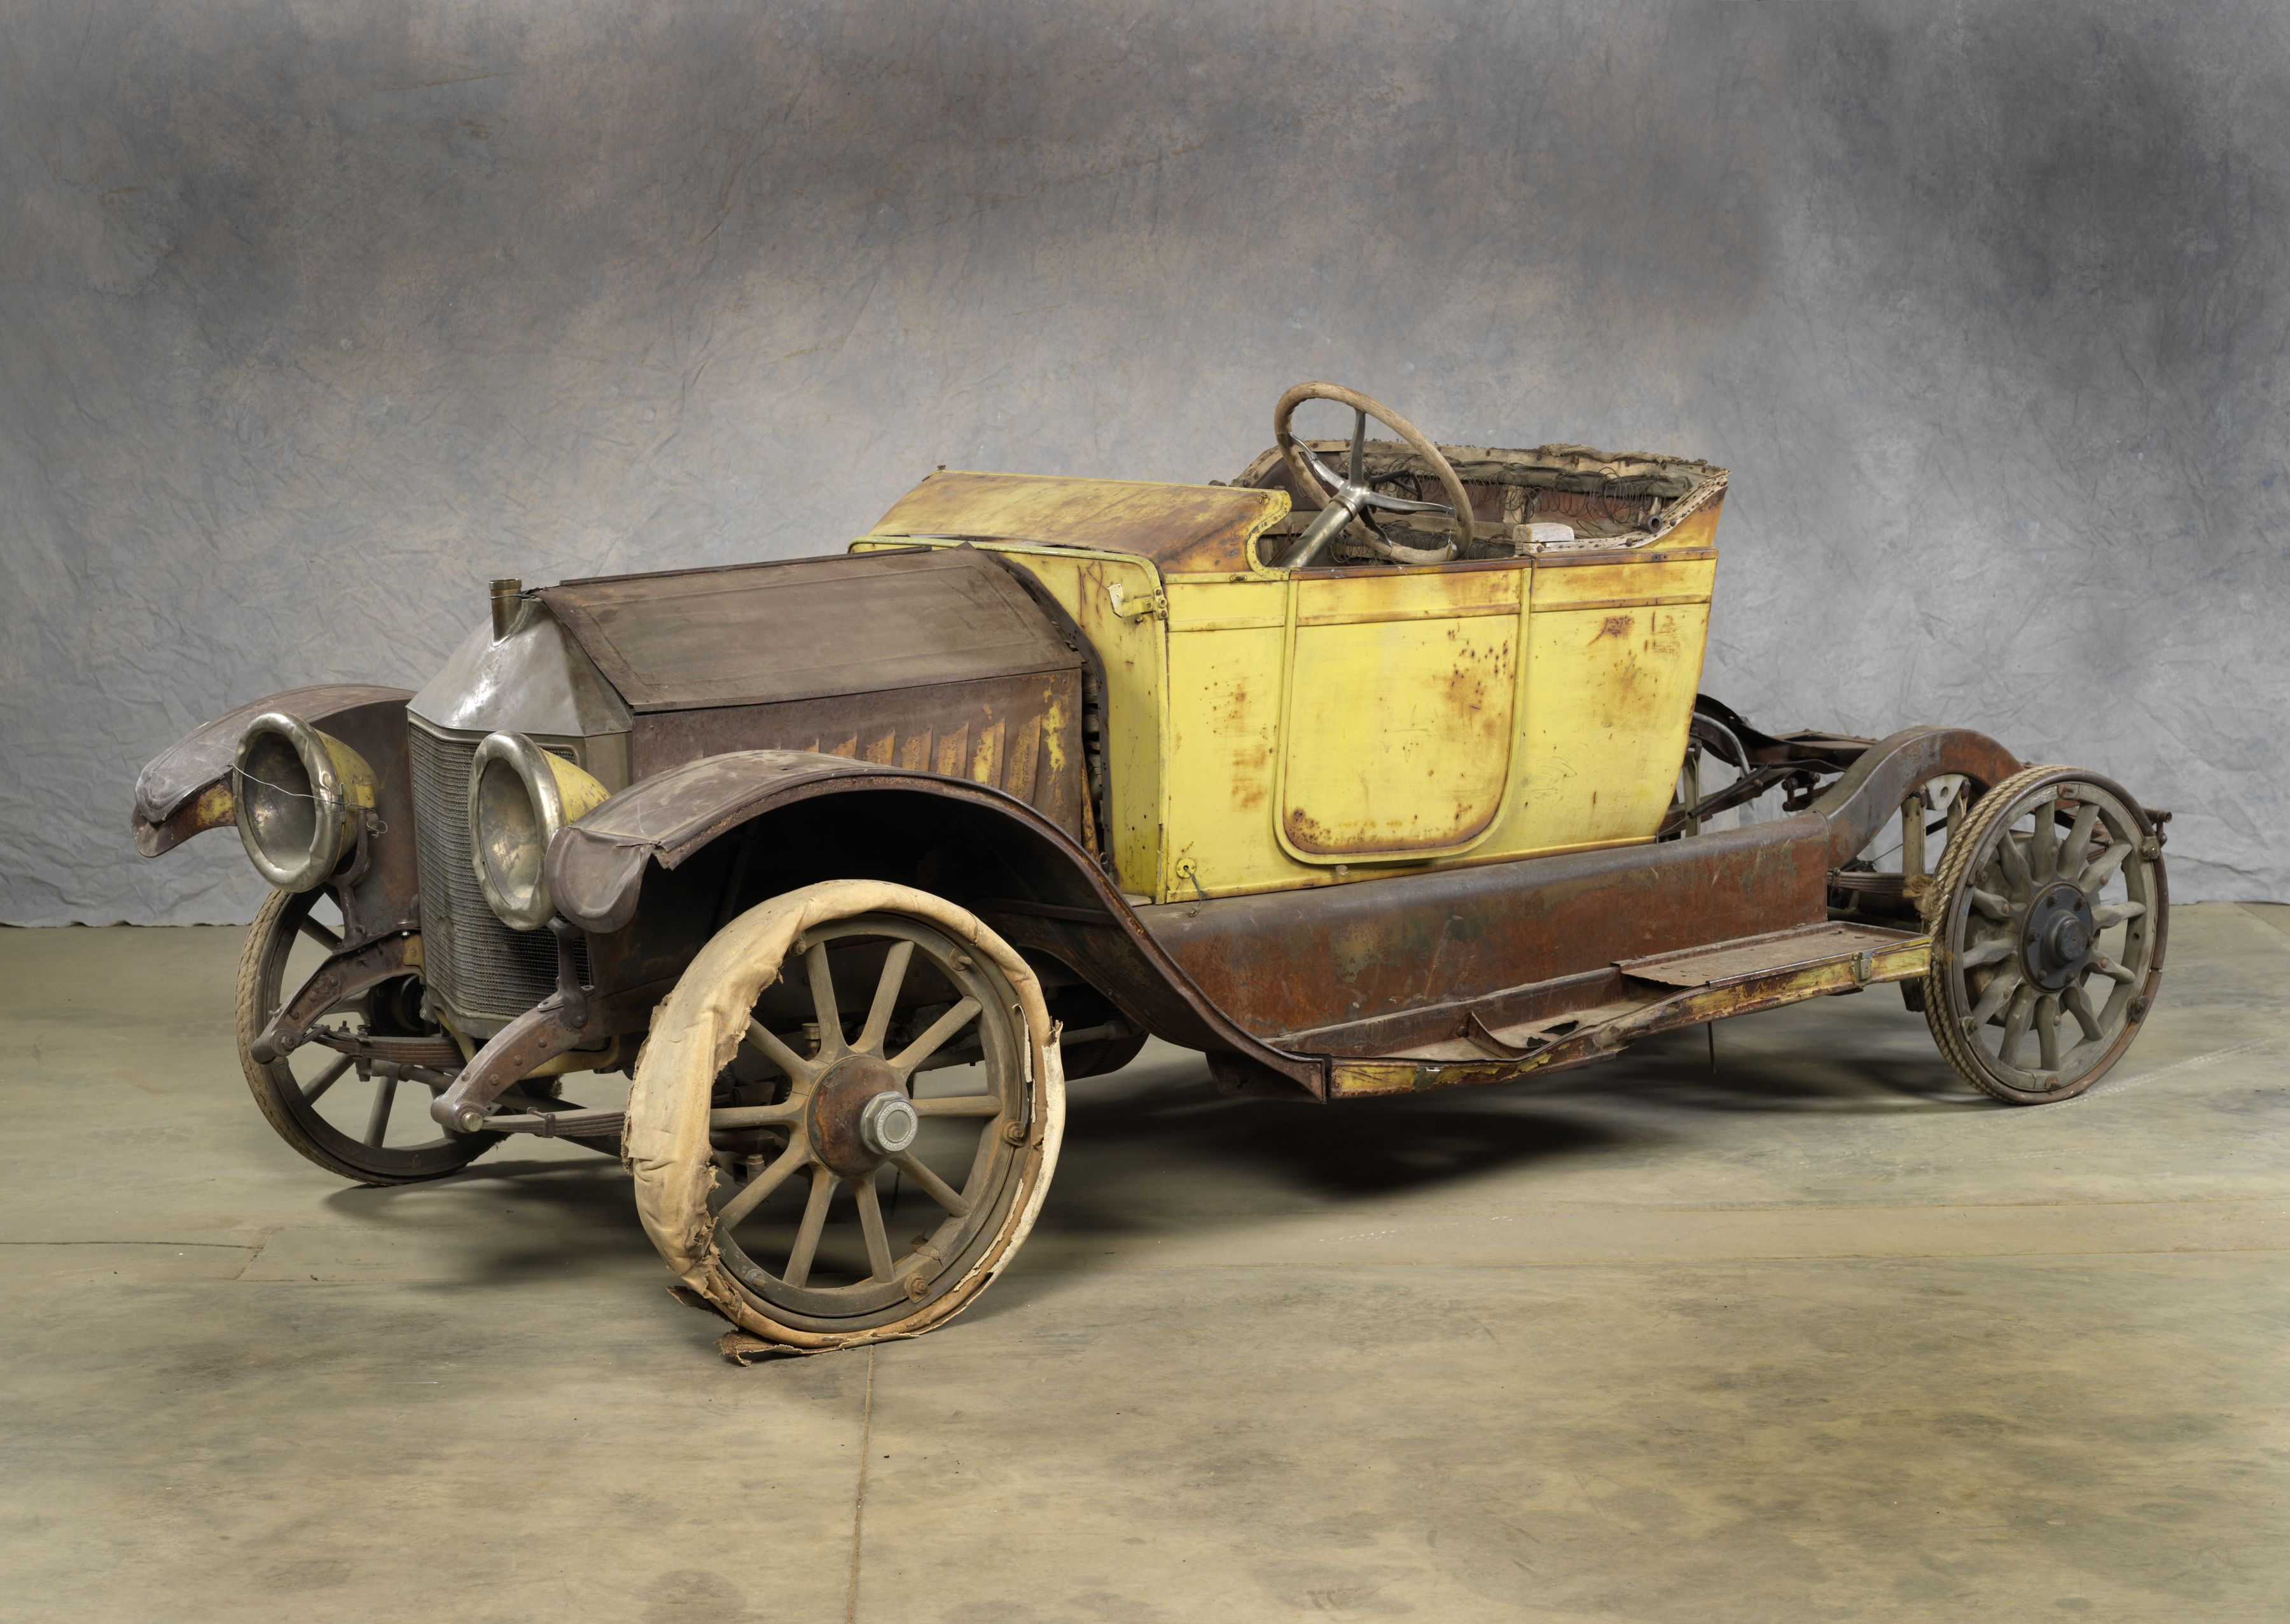 1913 Chevrolet Classic Six Type C Touring Car This Car Has Serial